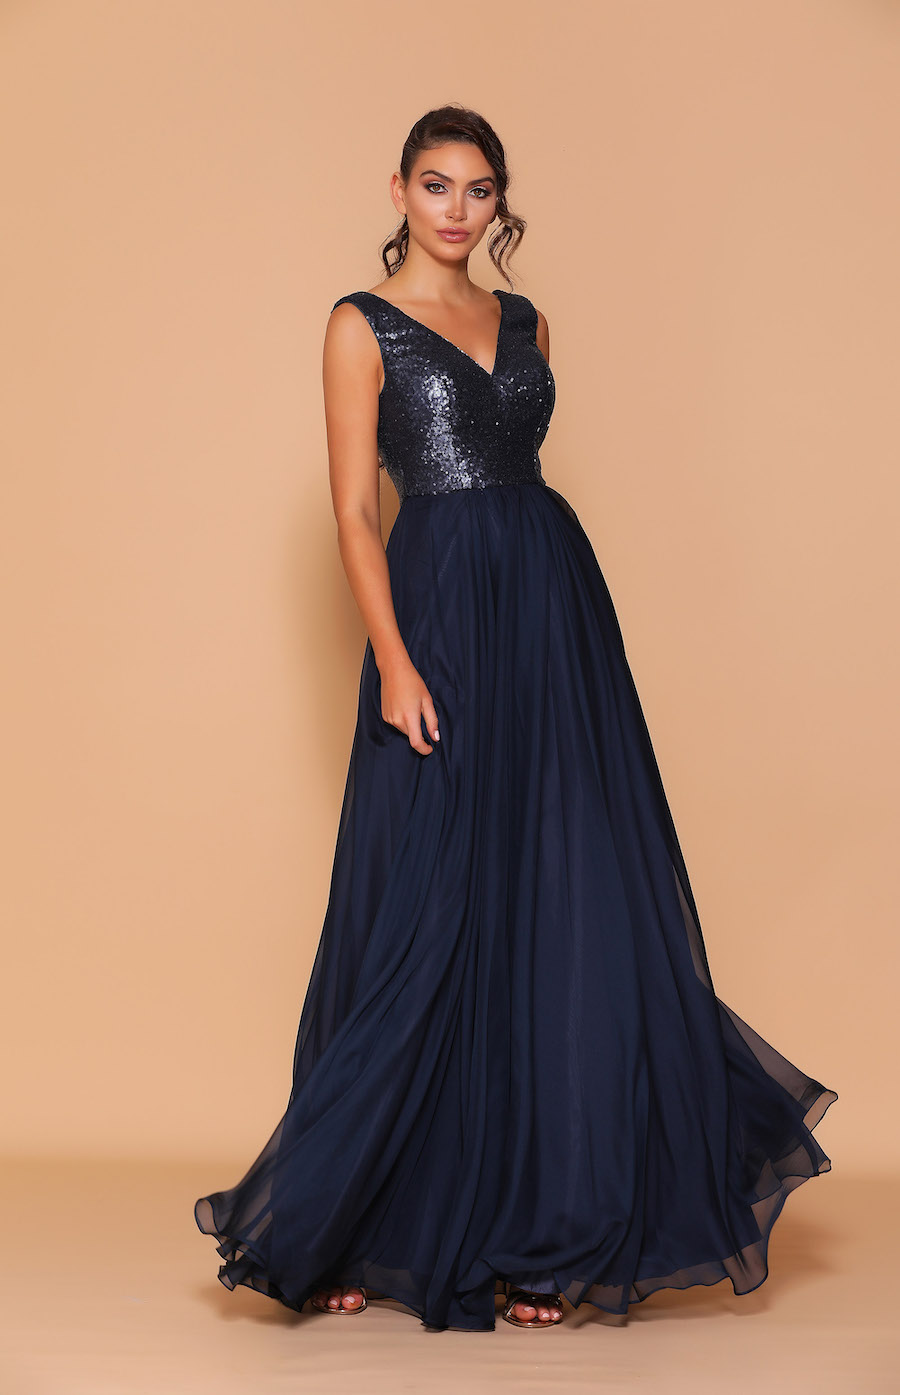 Sequin bodice with v-neck and chiffon skirt